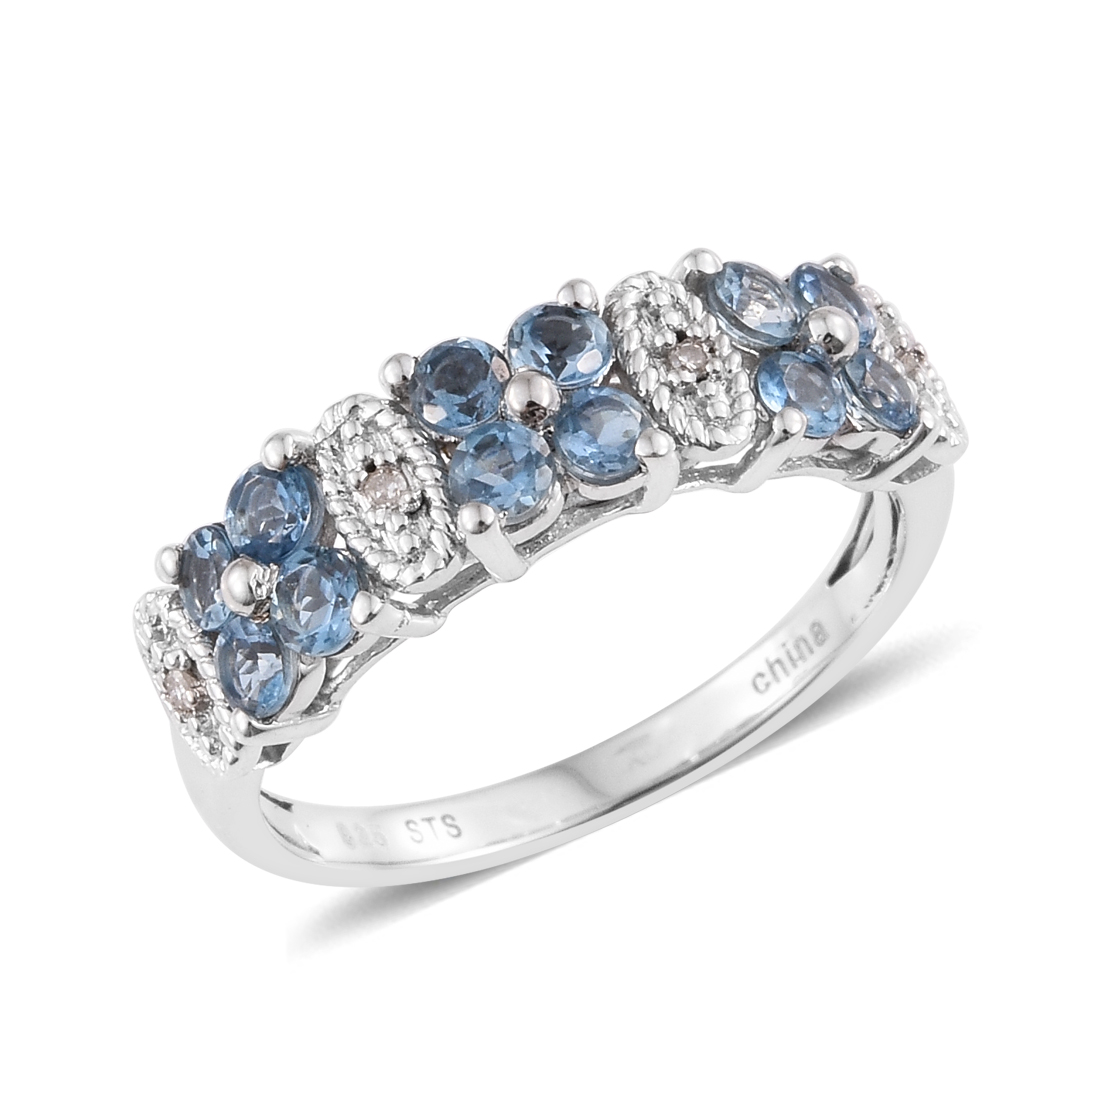 4a2c009da Aquamarine Diamond Cluster Ring Silver Gift Jewelry for Women Size 7 Cttw  0.5